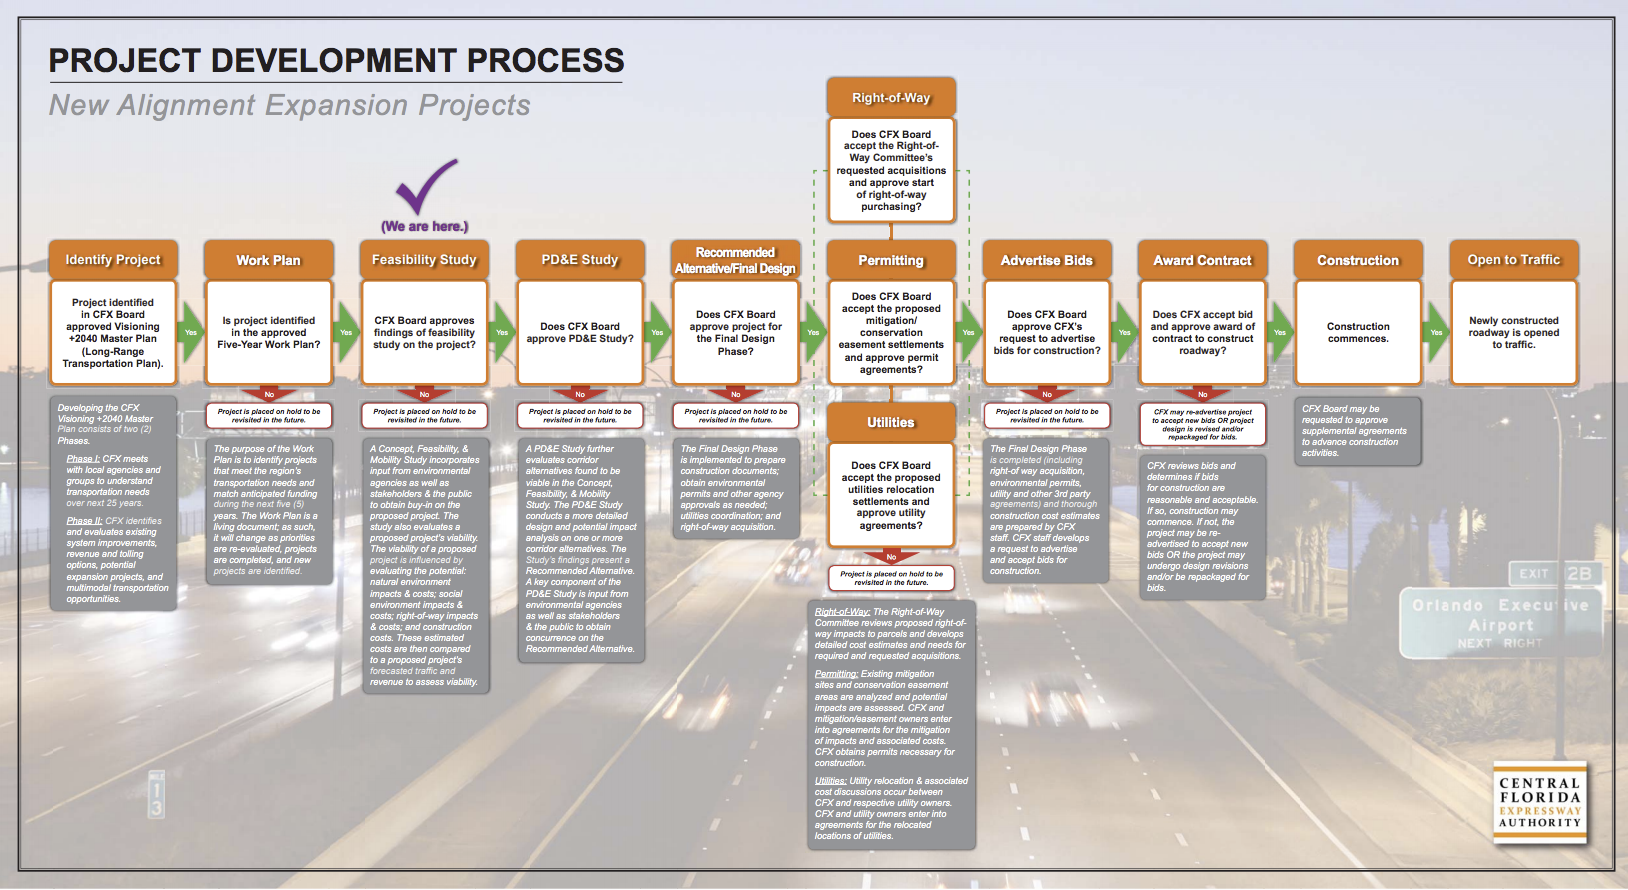 Central Florida Expressway Authority Project Development Process. Feasibility Study is highlighted to indicate the current step in the process.